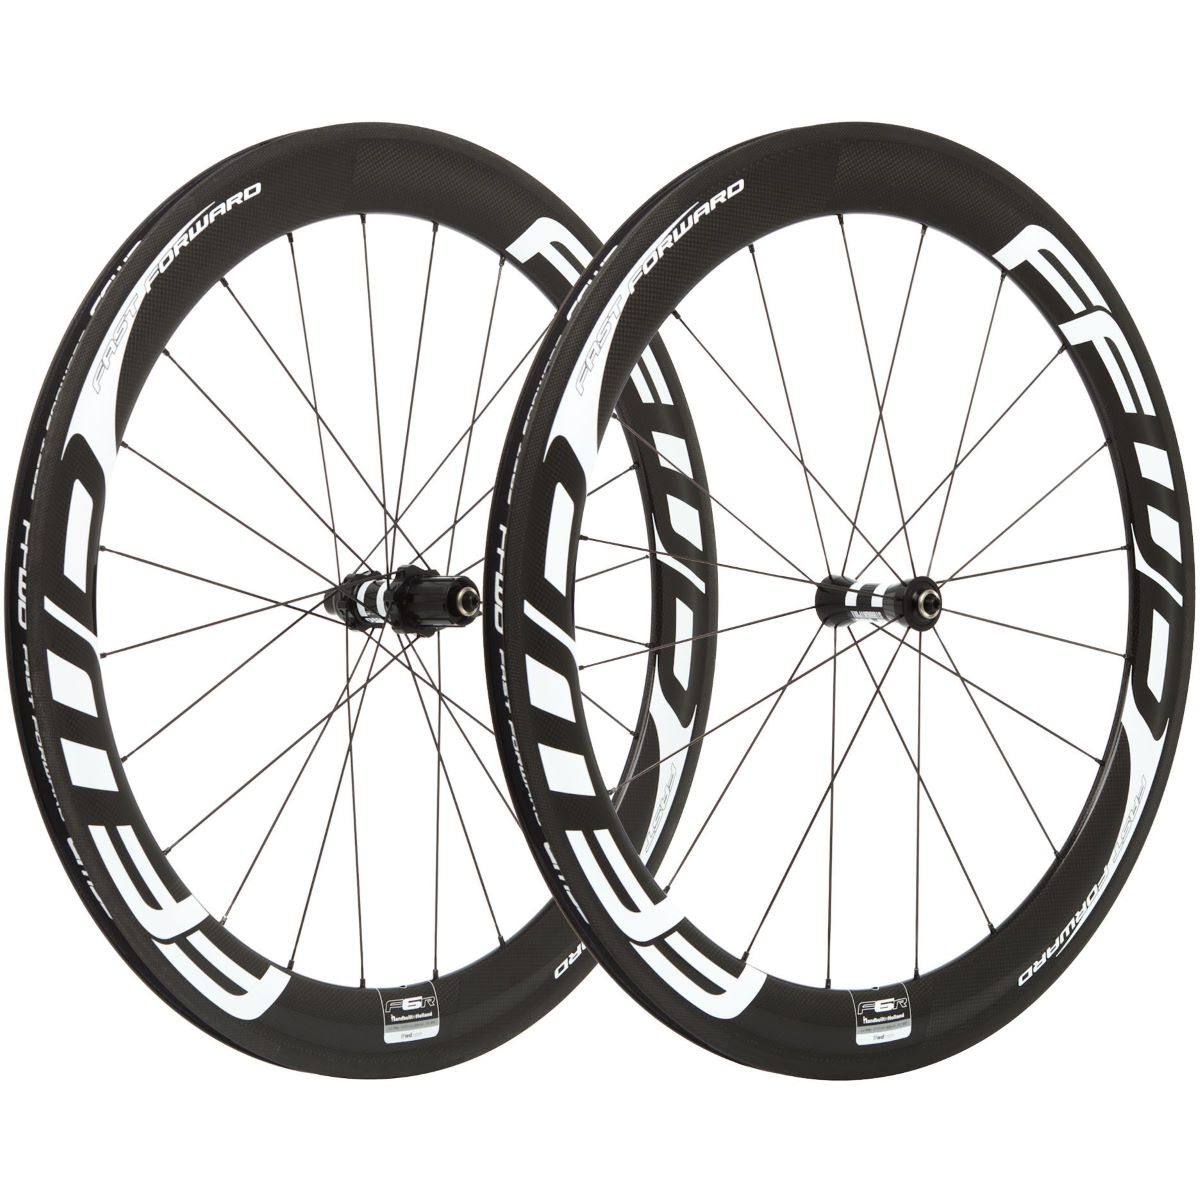 Fast Forward Carbon F6R FCC 60mm SP Wheelset - Ruedas de competición